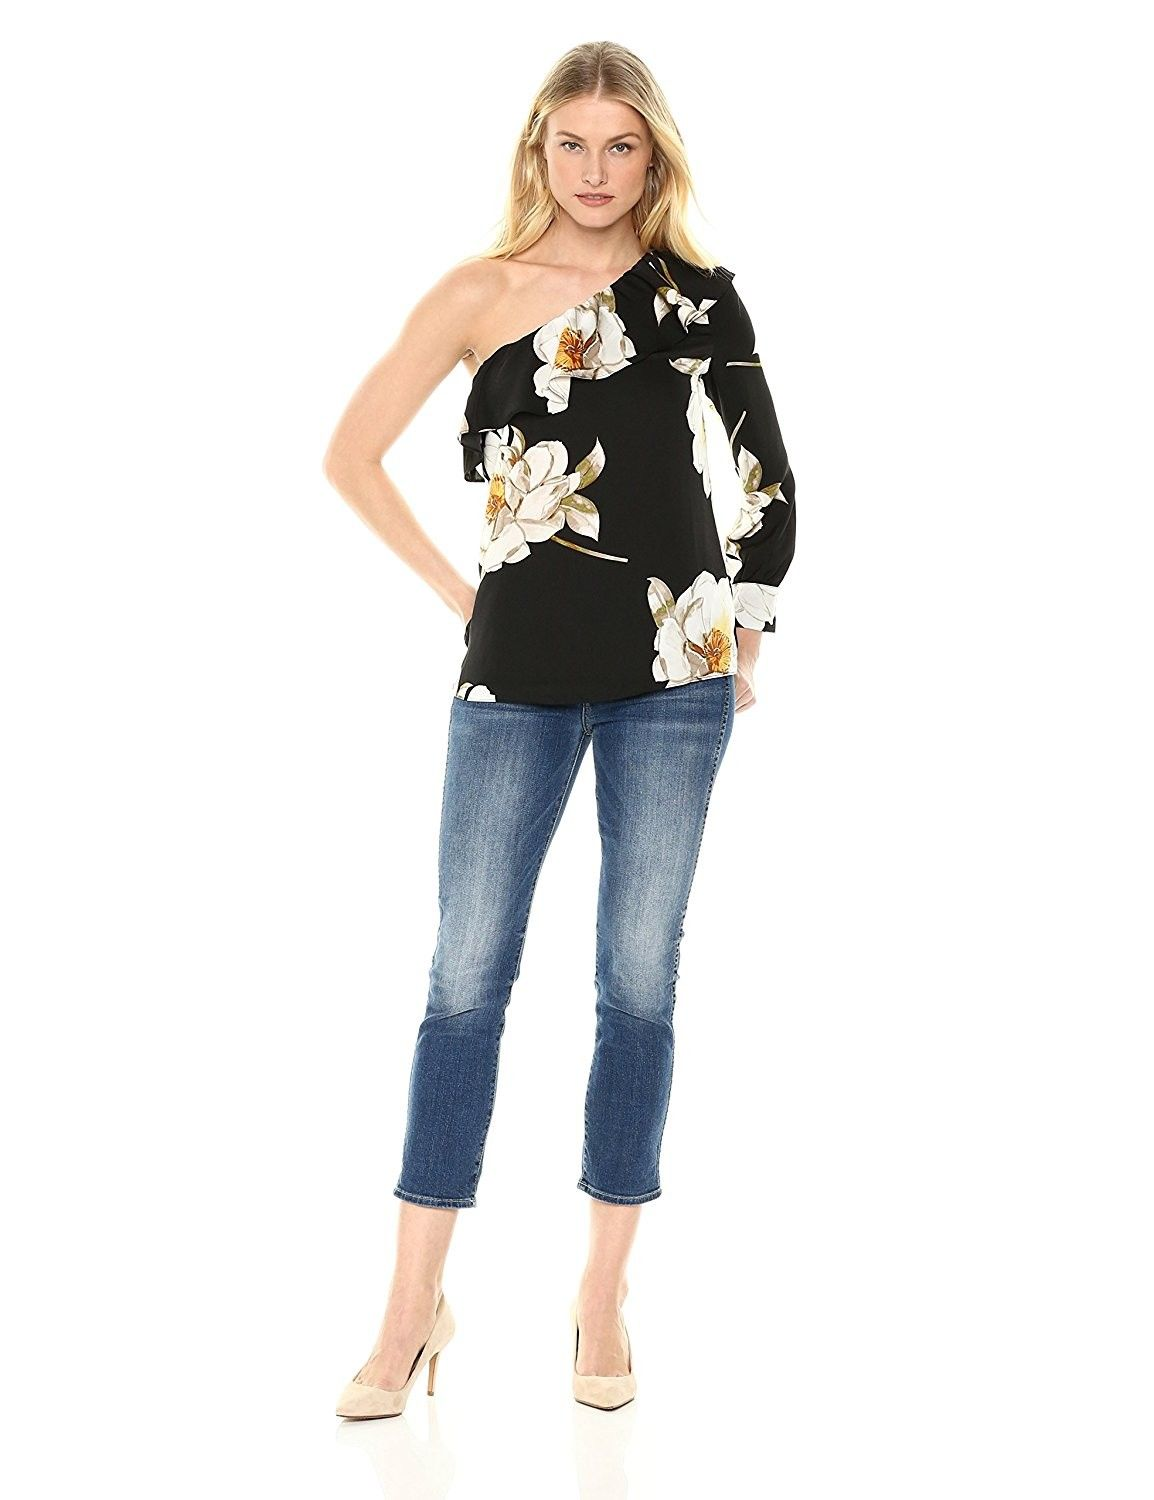 4afd05871fe Women's Clothing, Tops & Tees, Blouses & Button-Down Shirts,Lark & Ro  Women's Long Sleeved Top With Asymmetric Cold Shoulder - Oversized Camellia  Print ...